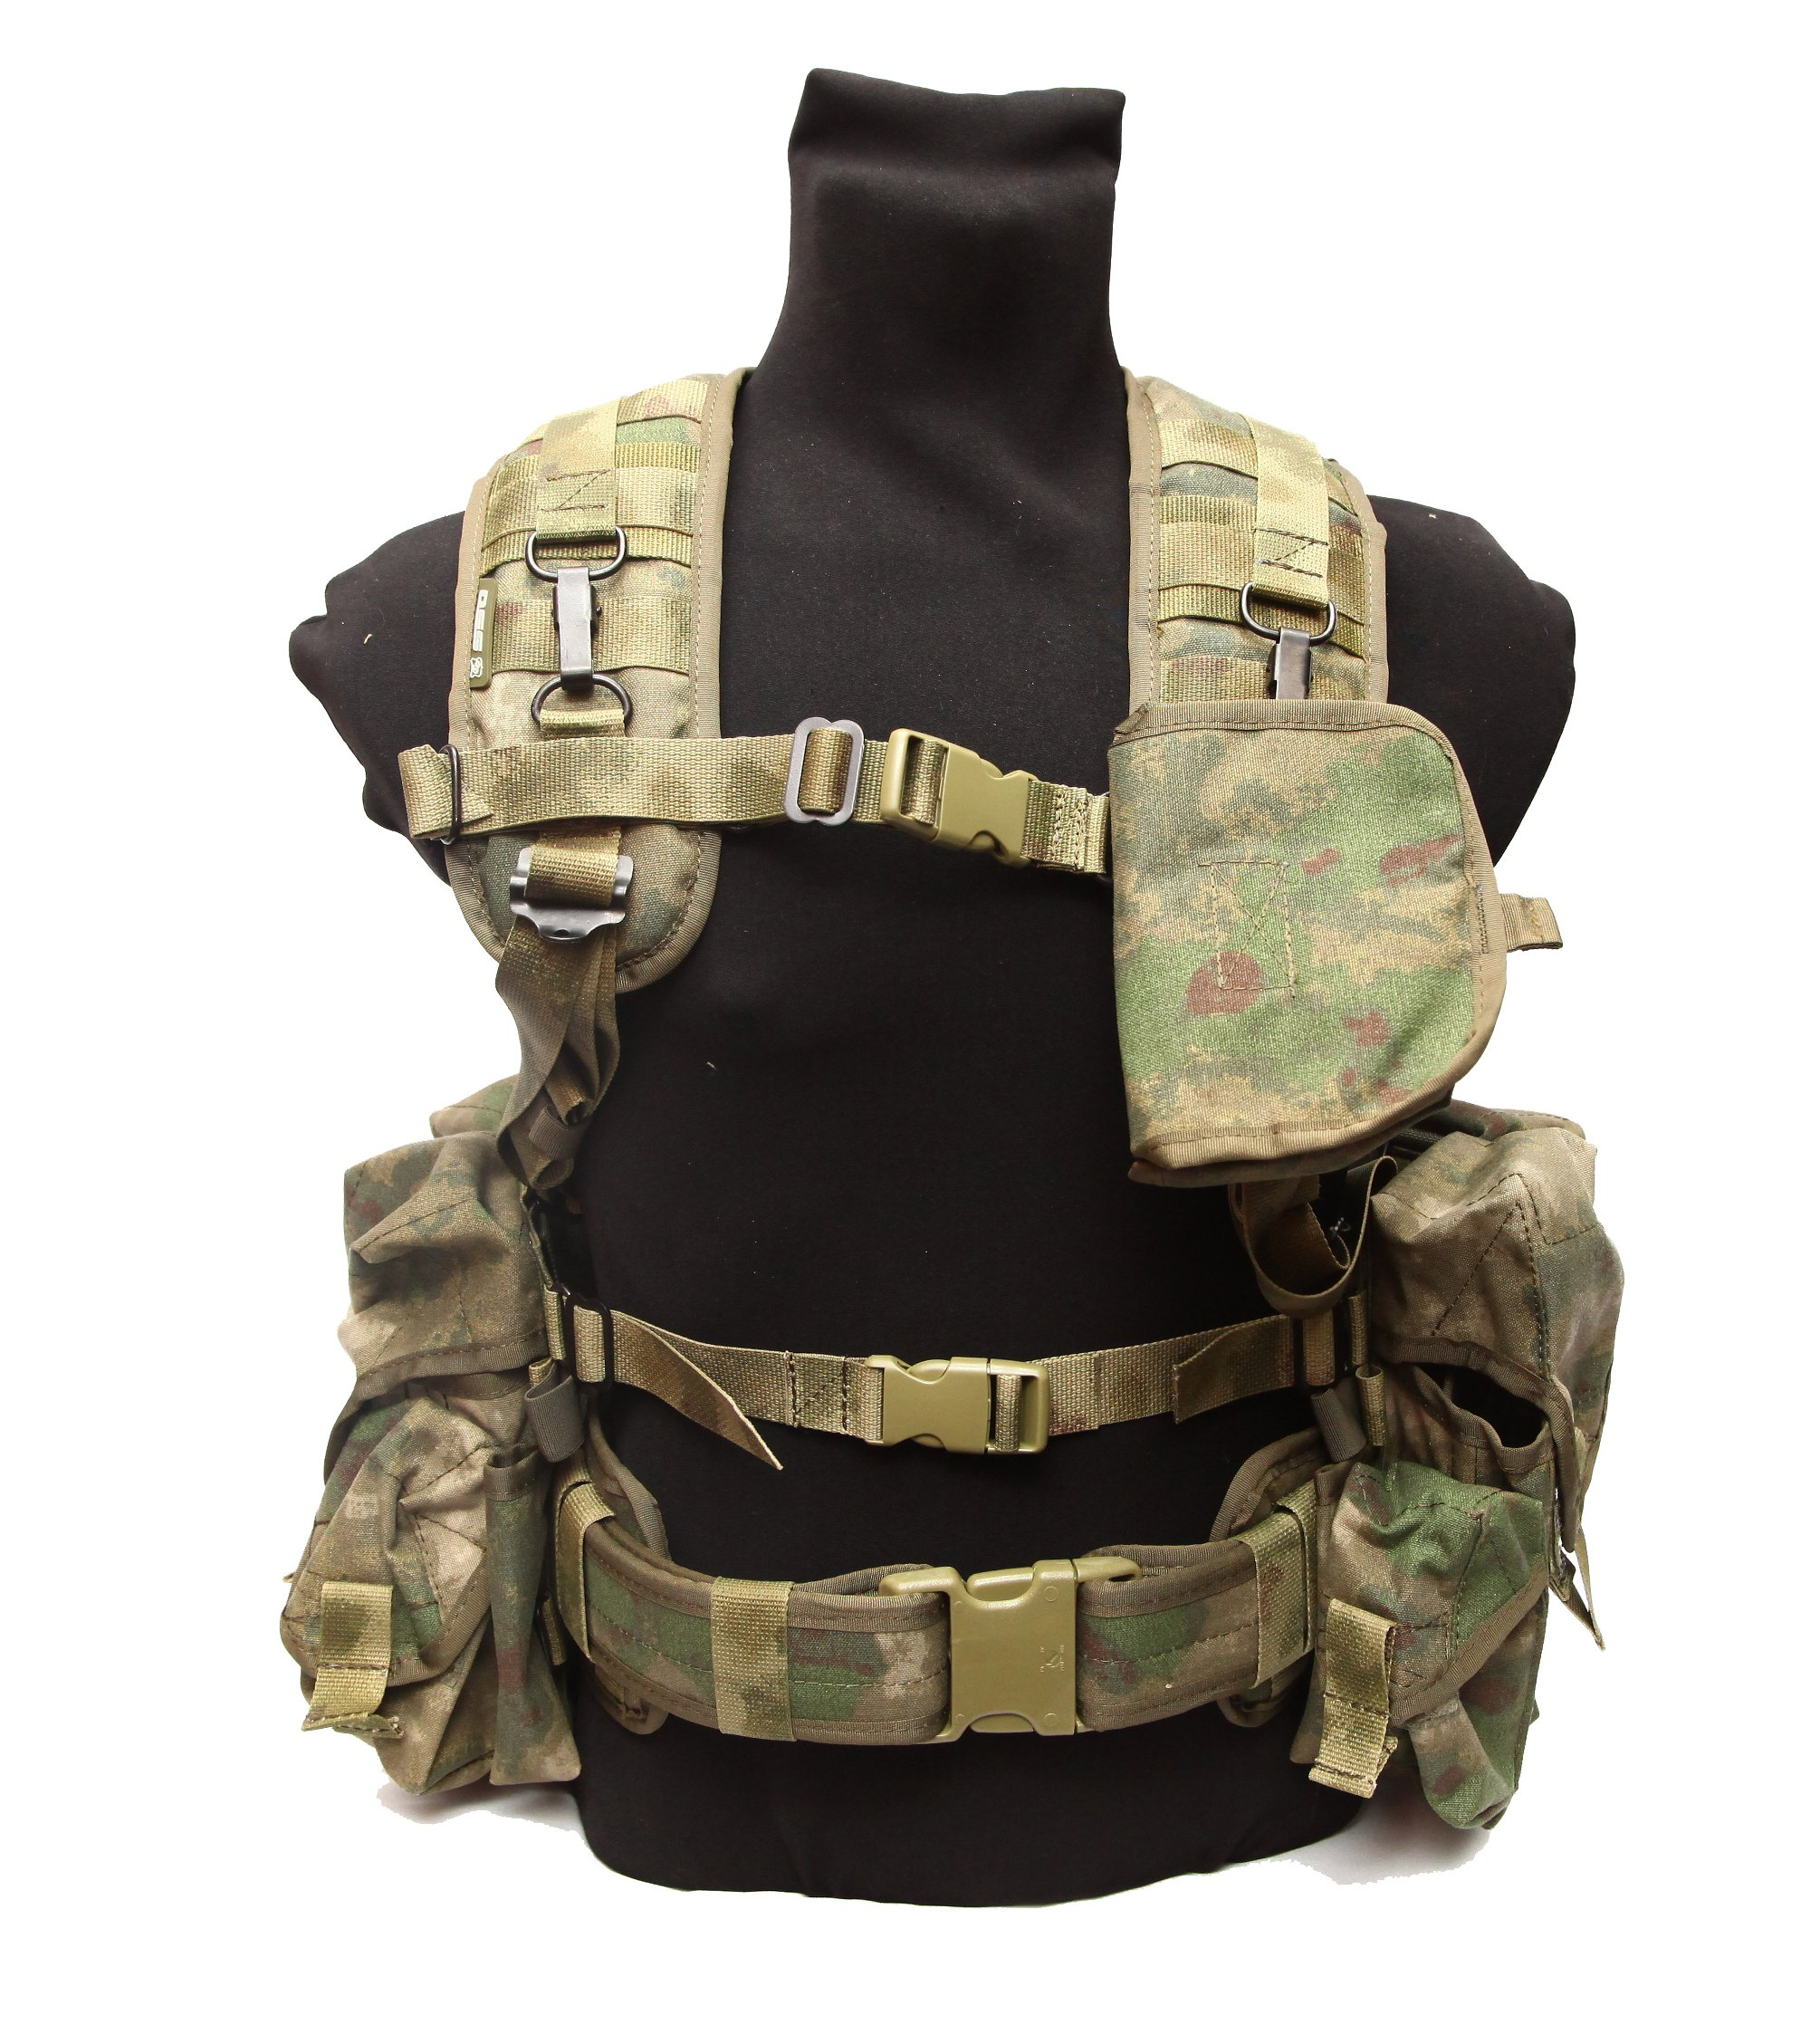 Russian army spetsnaz SPOSN SSO Smersh AK assault vest gear set A-tacs FG by SSO/SPOSN